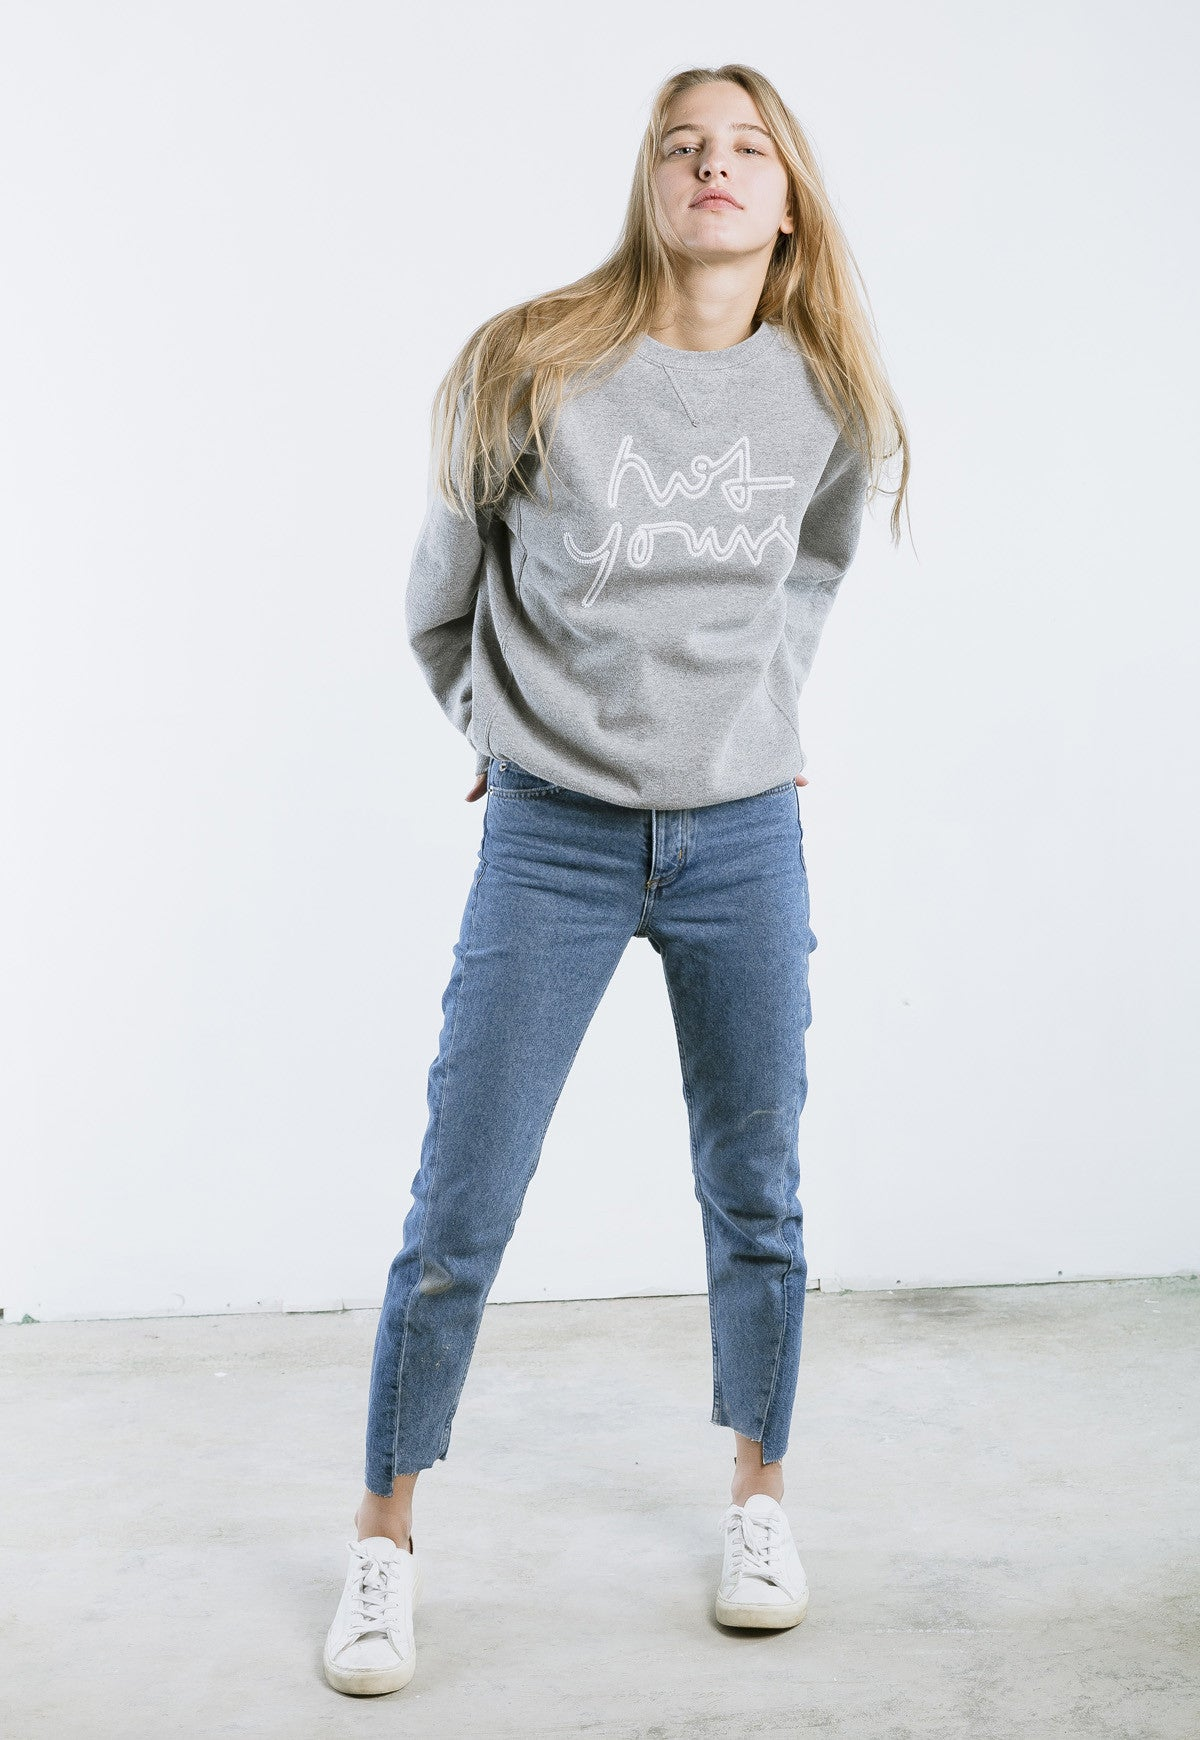 not yours, vegan, vegan slogan, cruelty free, animal free, animal rights, sweatshirt, crew neck, sweater, grey, gray - nois